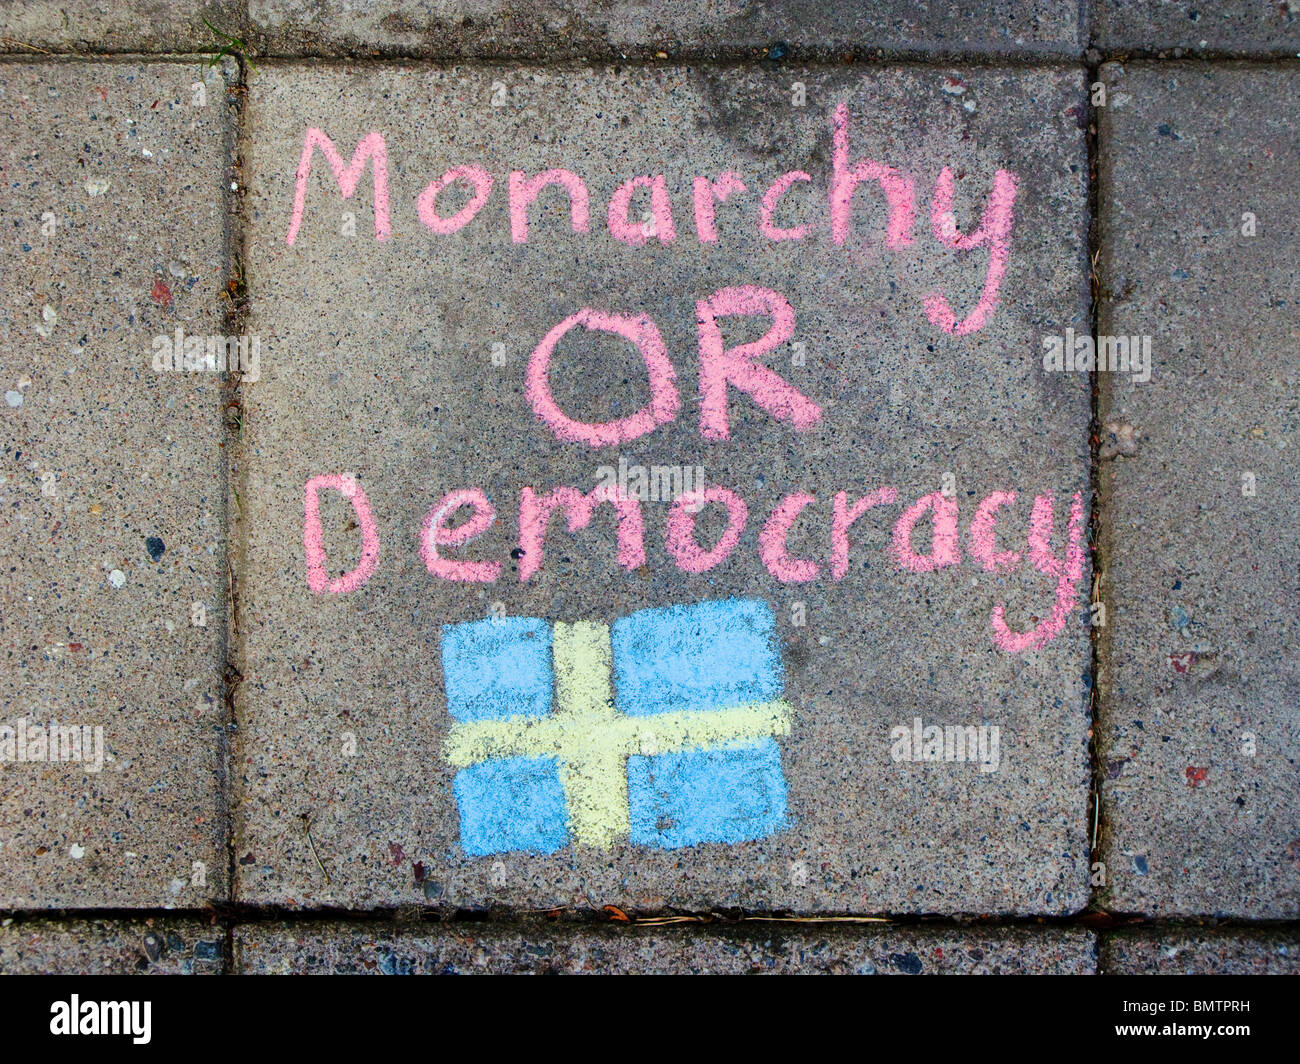 Monarchy OR Democracy - text written on paving stones, as a silent protest against the Swedish Crown princesss wedding - Stock Image